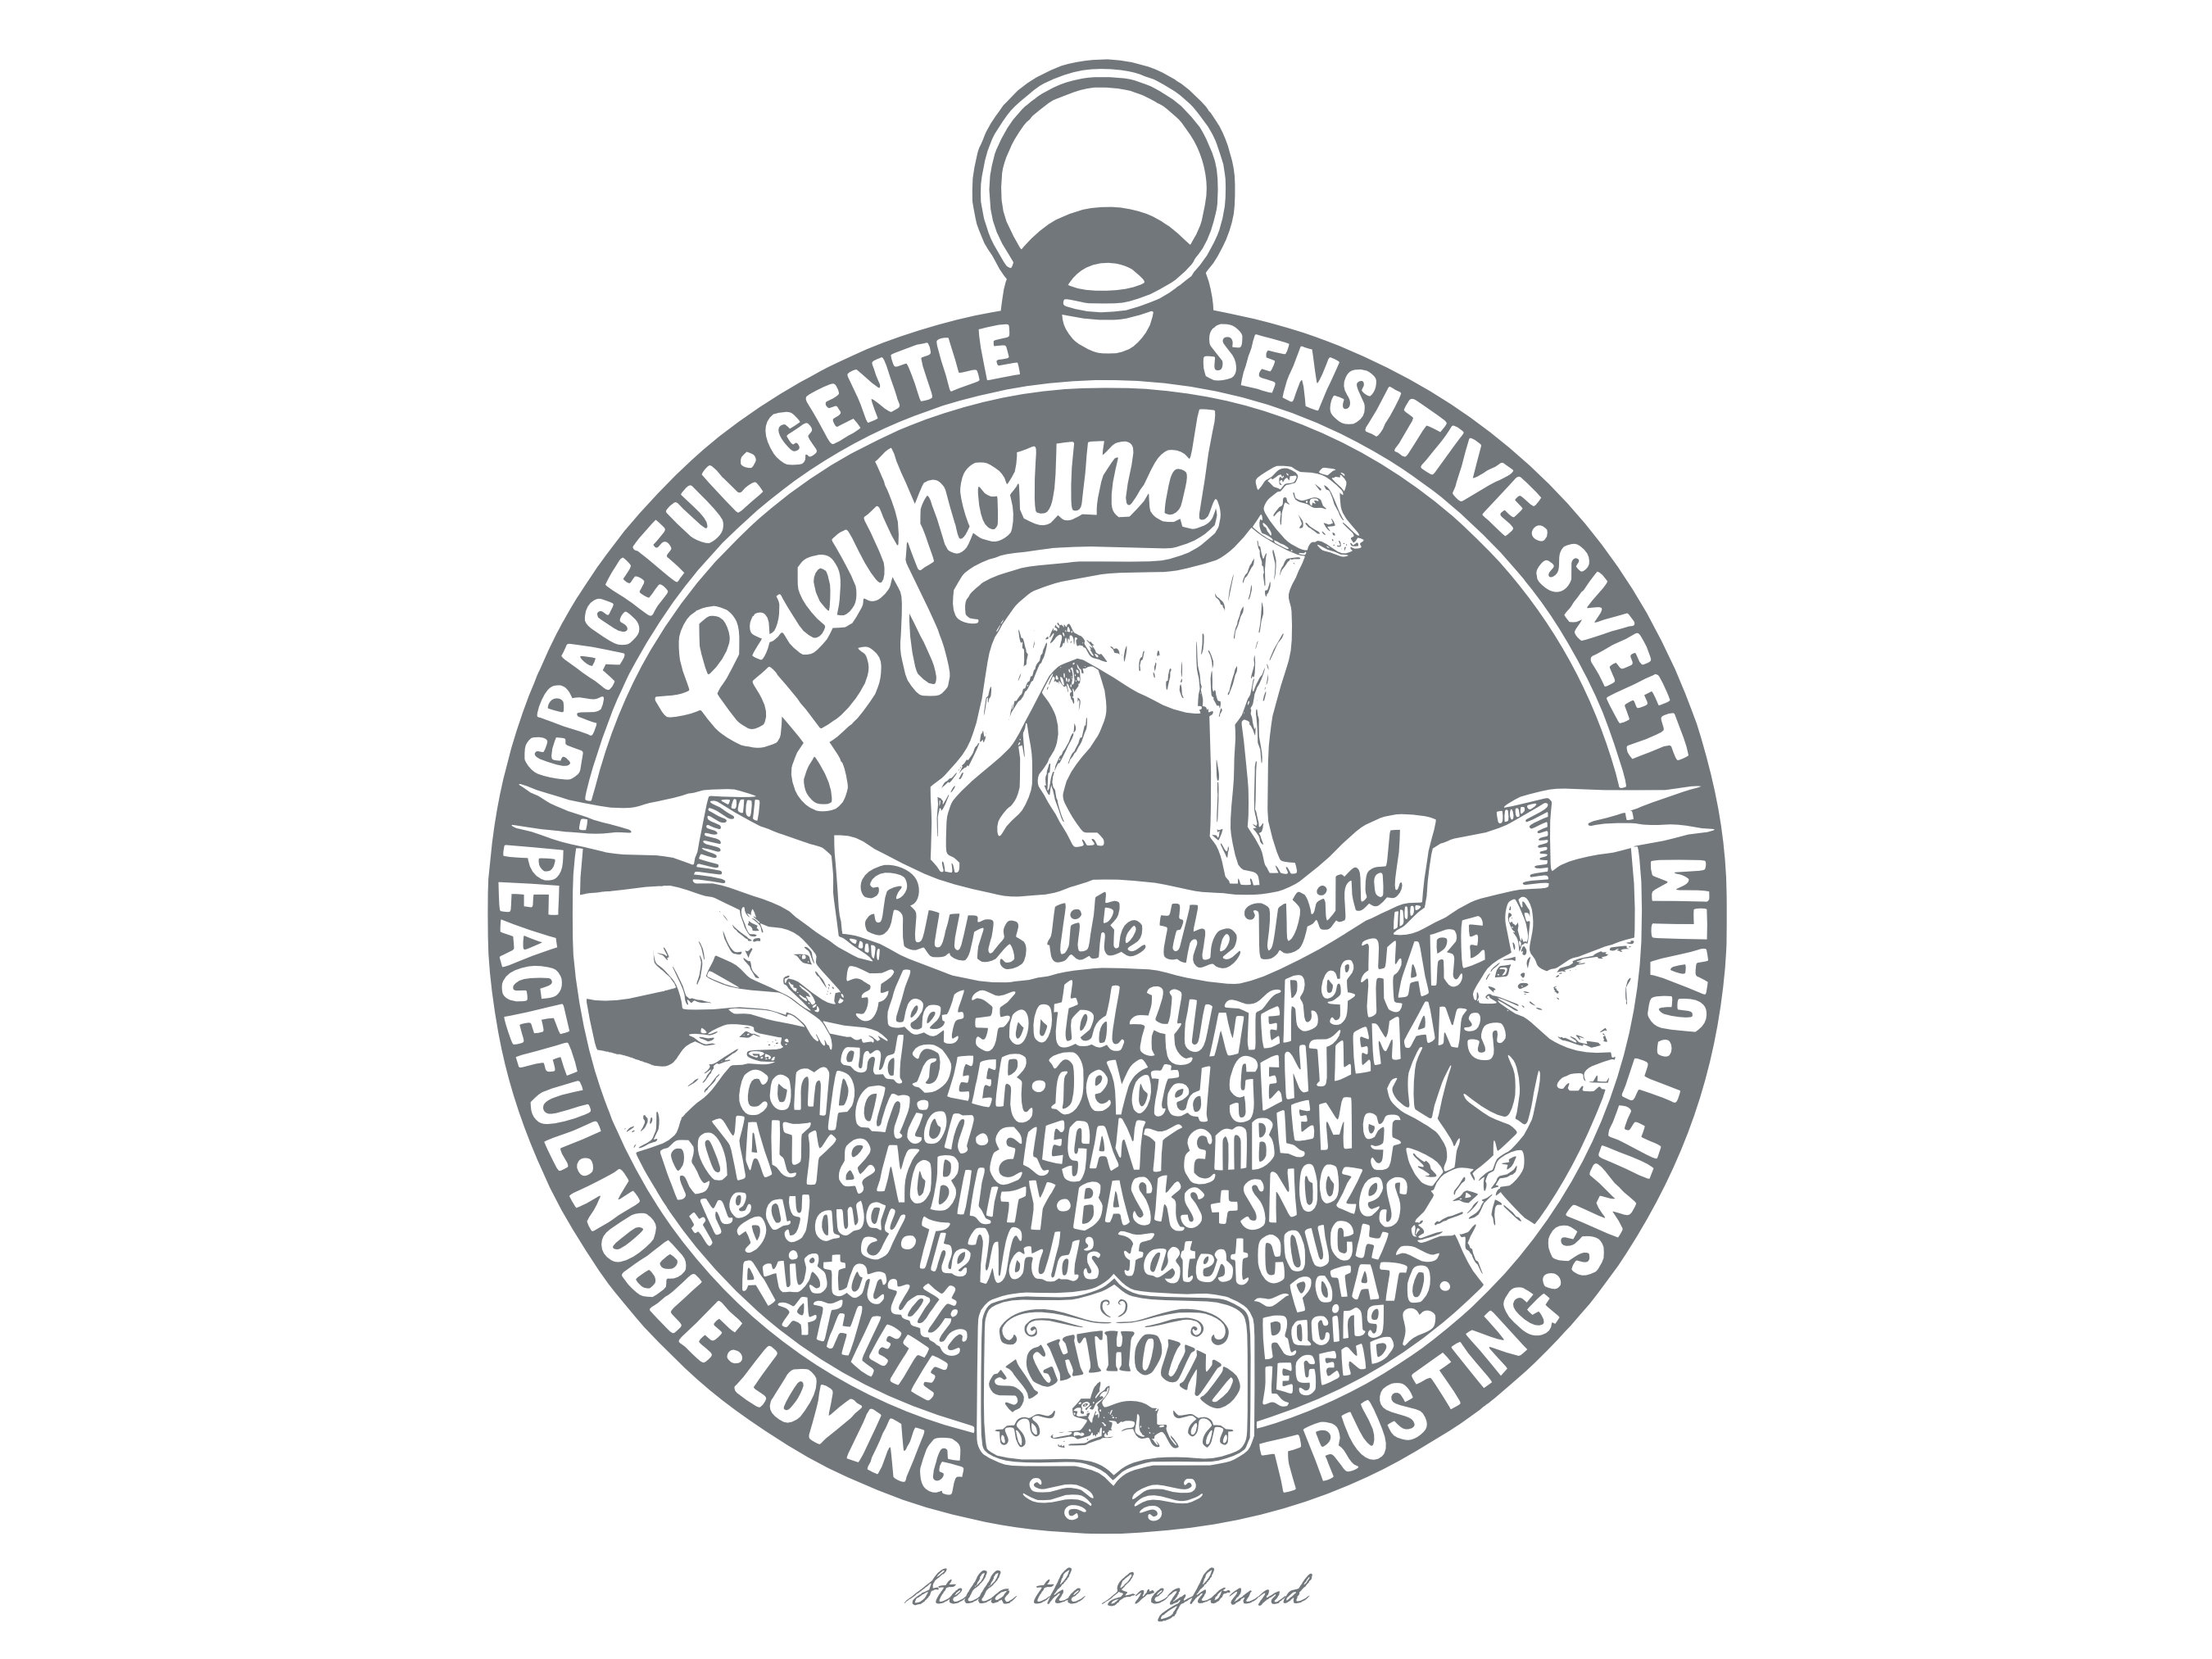 Greyhound prints - Hand lettering & Illustration by Debbie Kendall